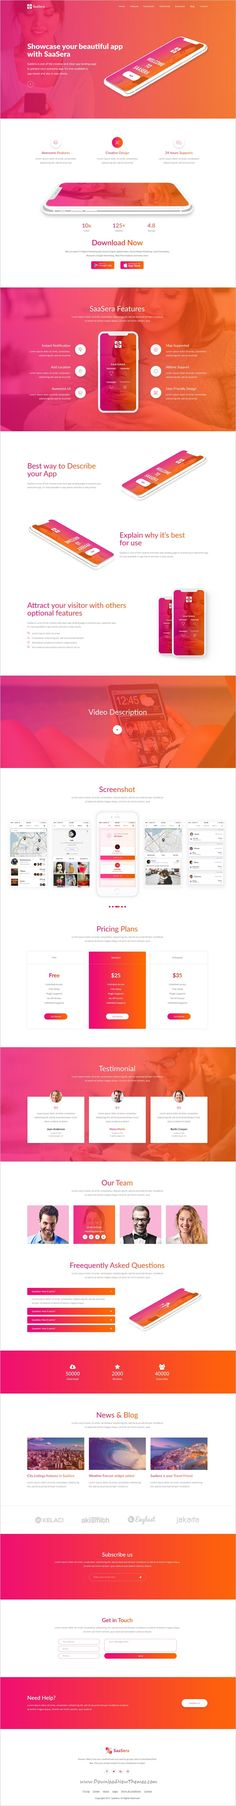 SaaSera is clean and modern design PSD template for startups web #app and software #showcase landing page website with 13 layered PSD pages download now #webdesign